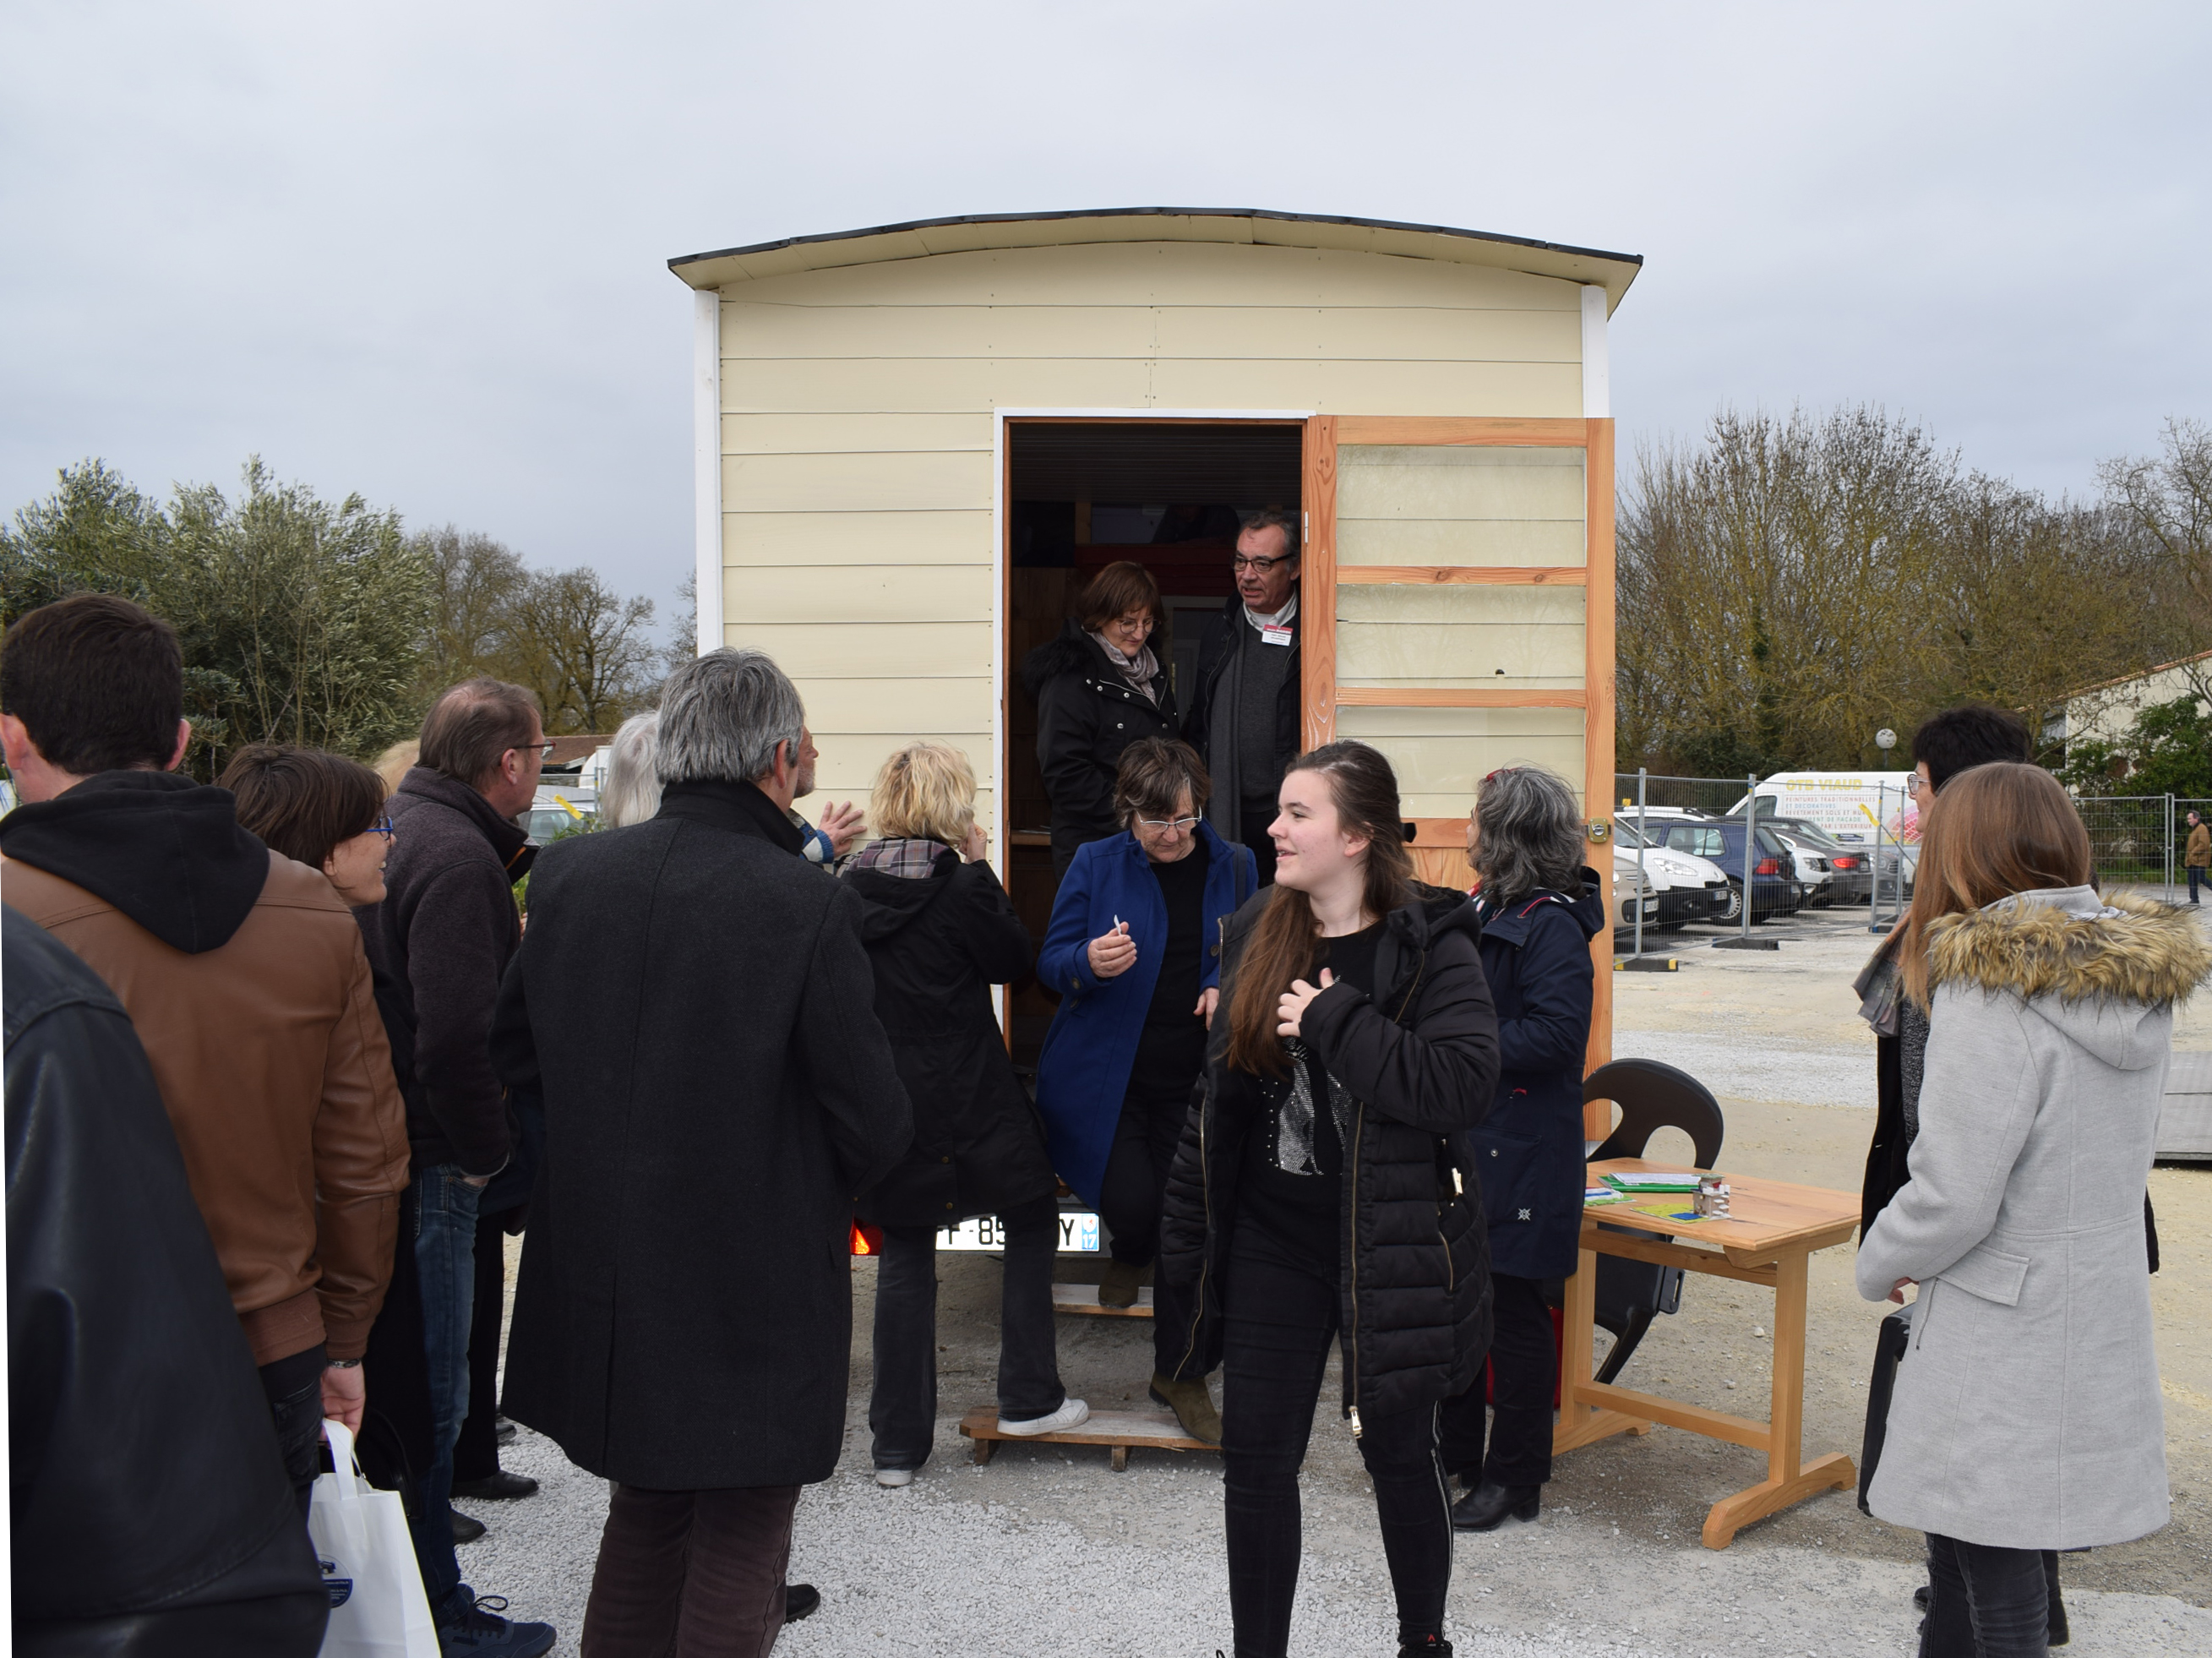 Notre Tiny House au salon de Saintes